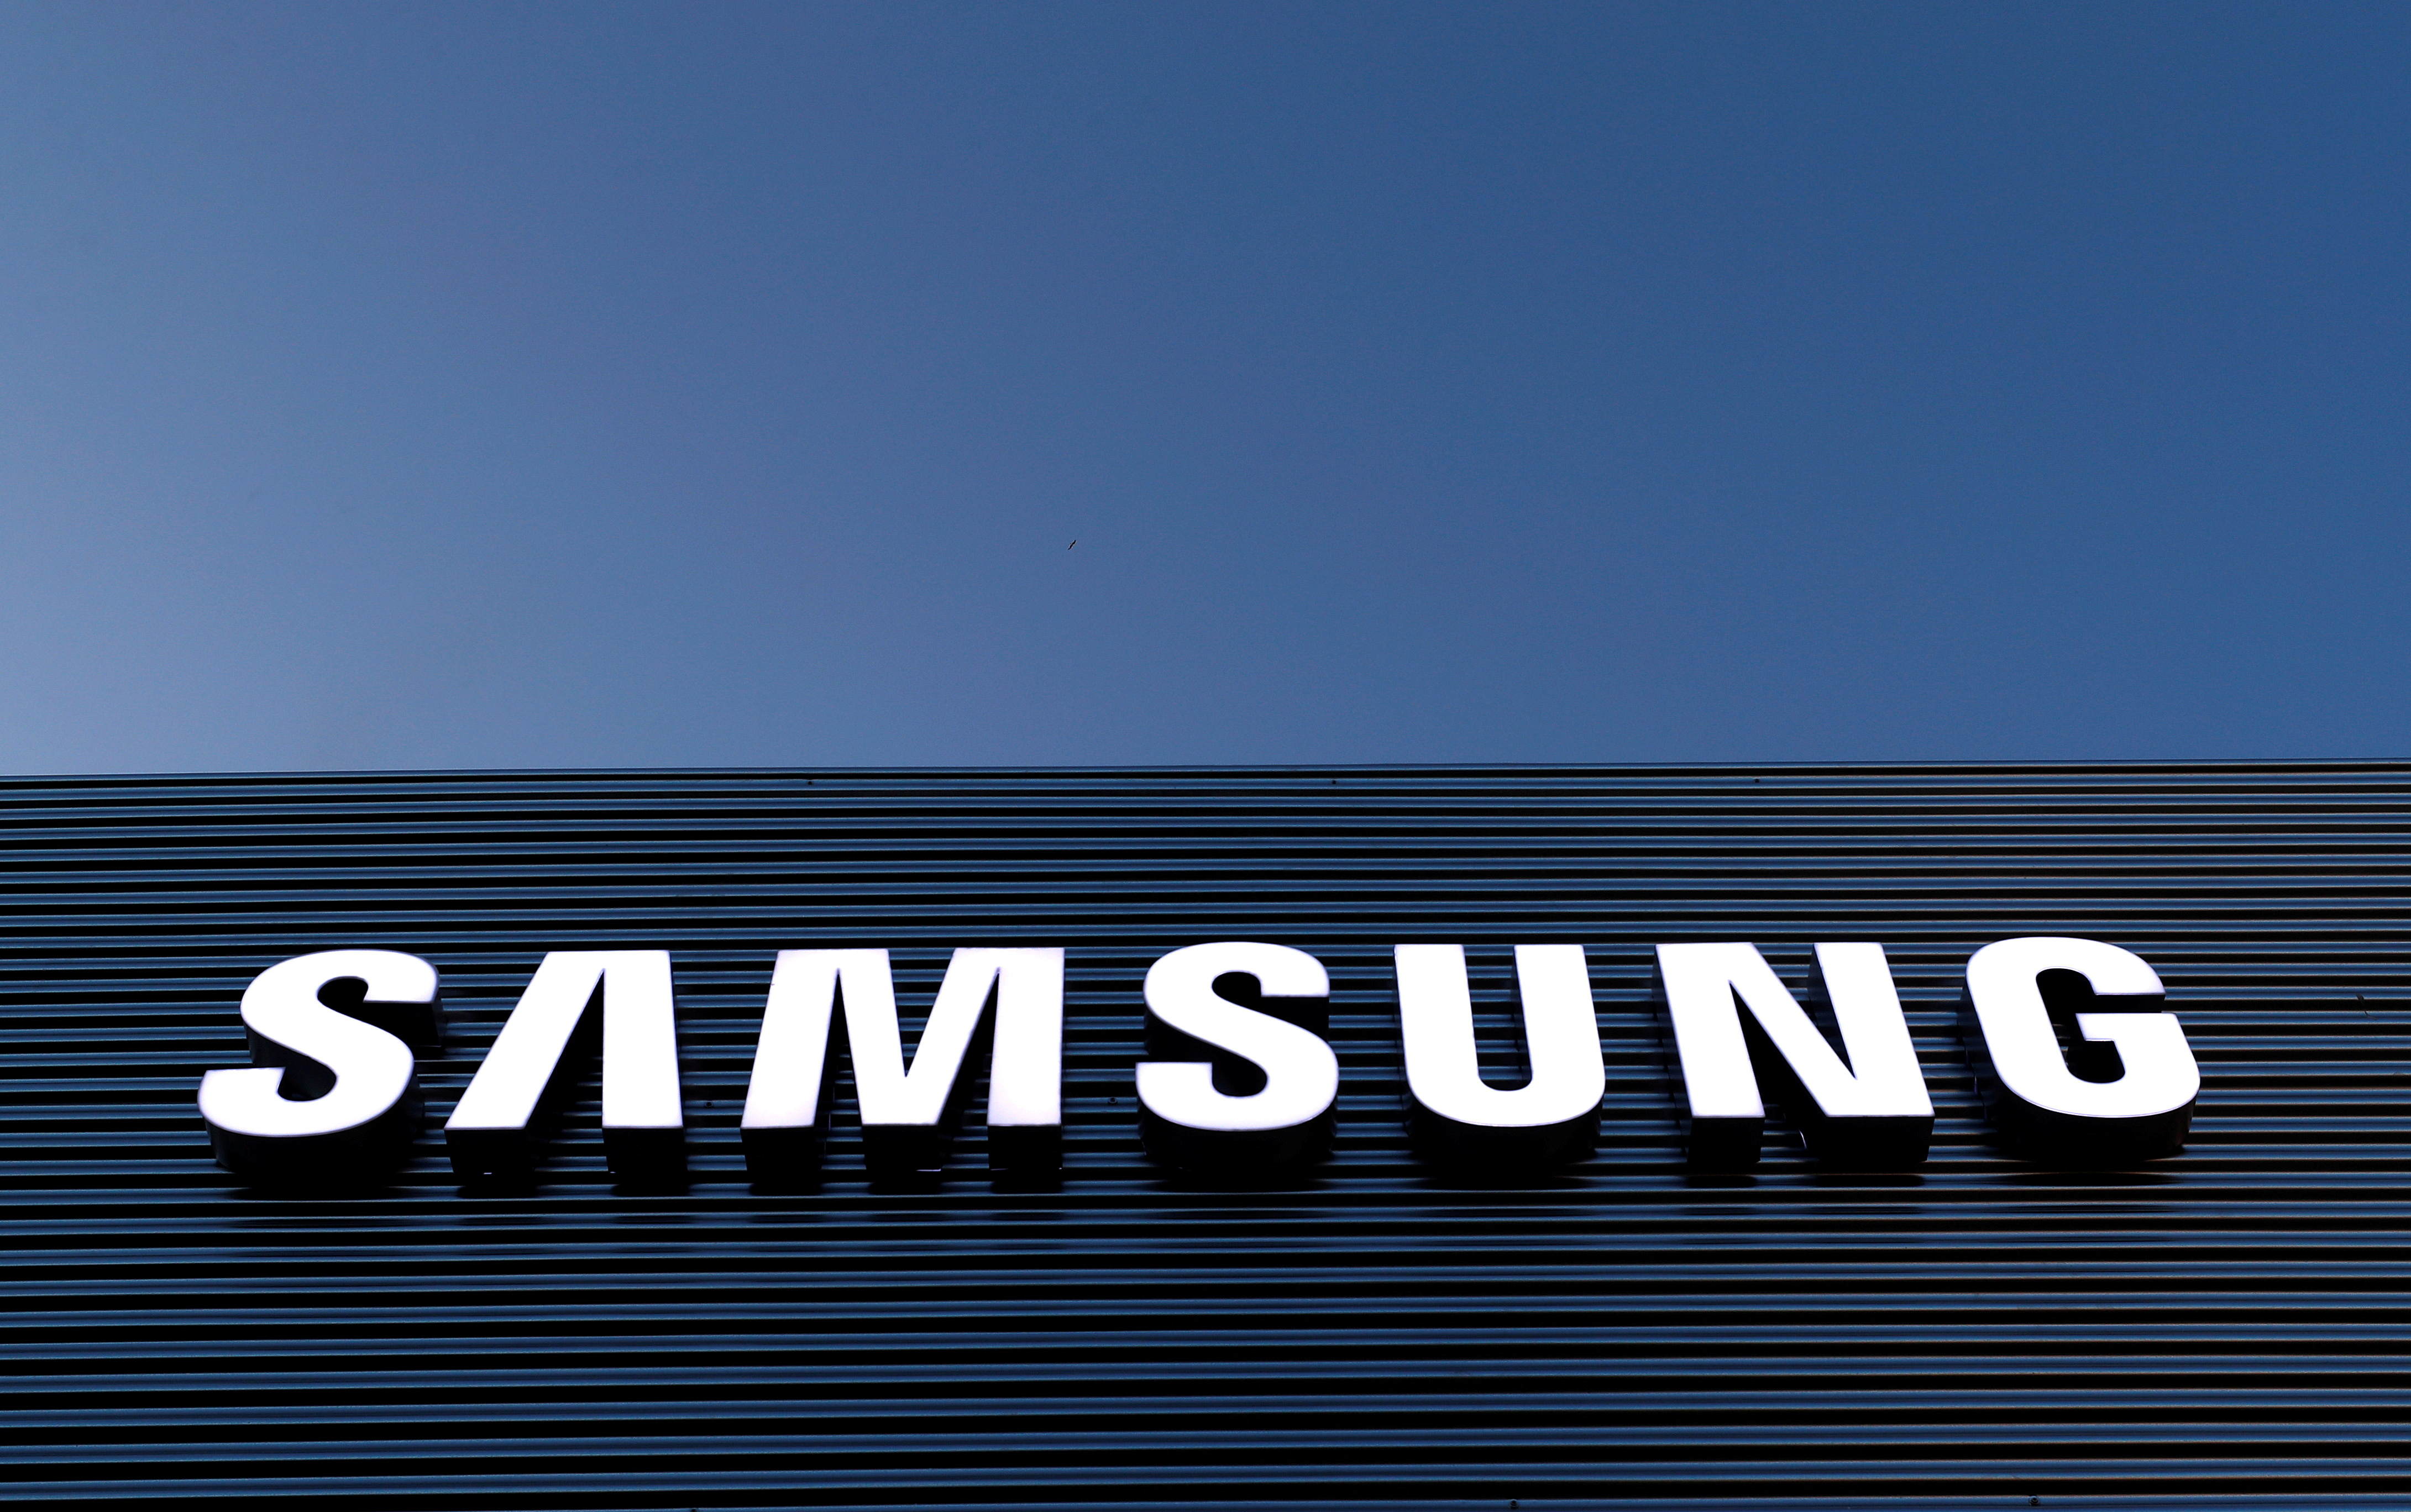 The logo of Samsung is seen on a building during the Mobile World Congress in Barcelona, Spain February 25, 2018. REUTERS/Yves Herman